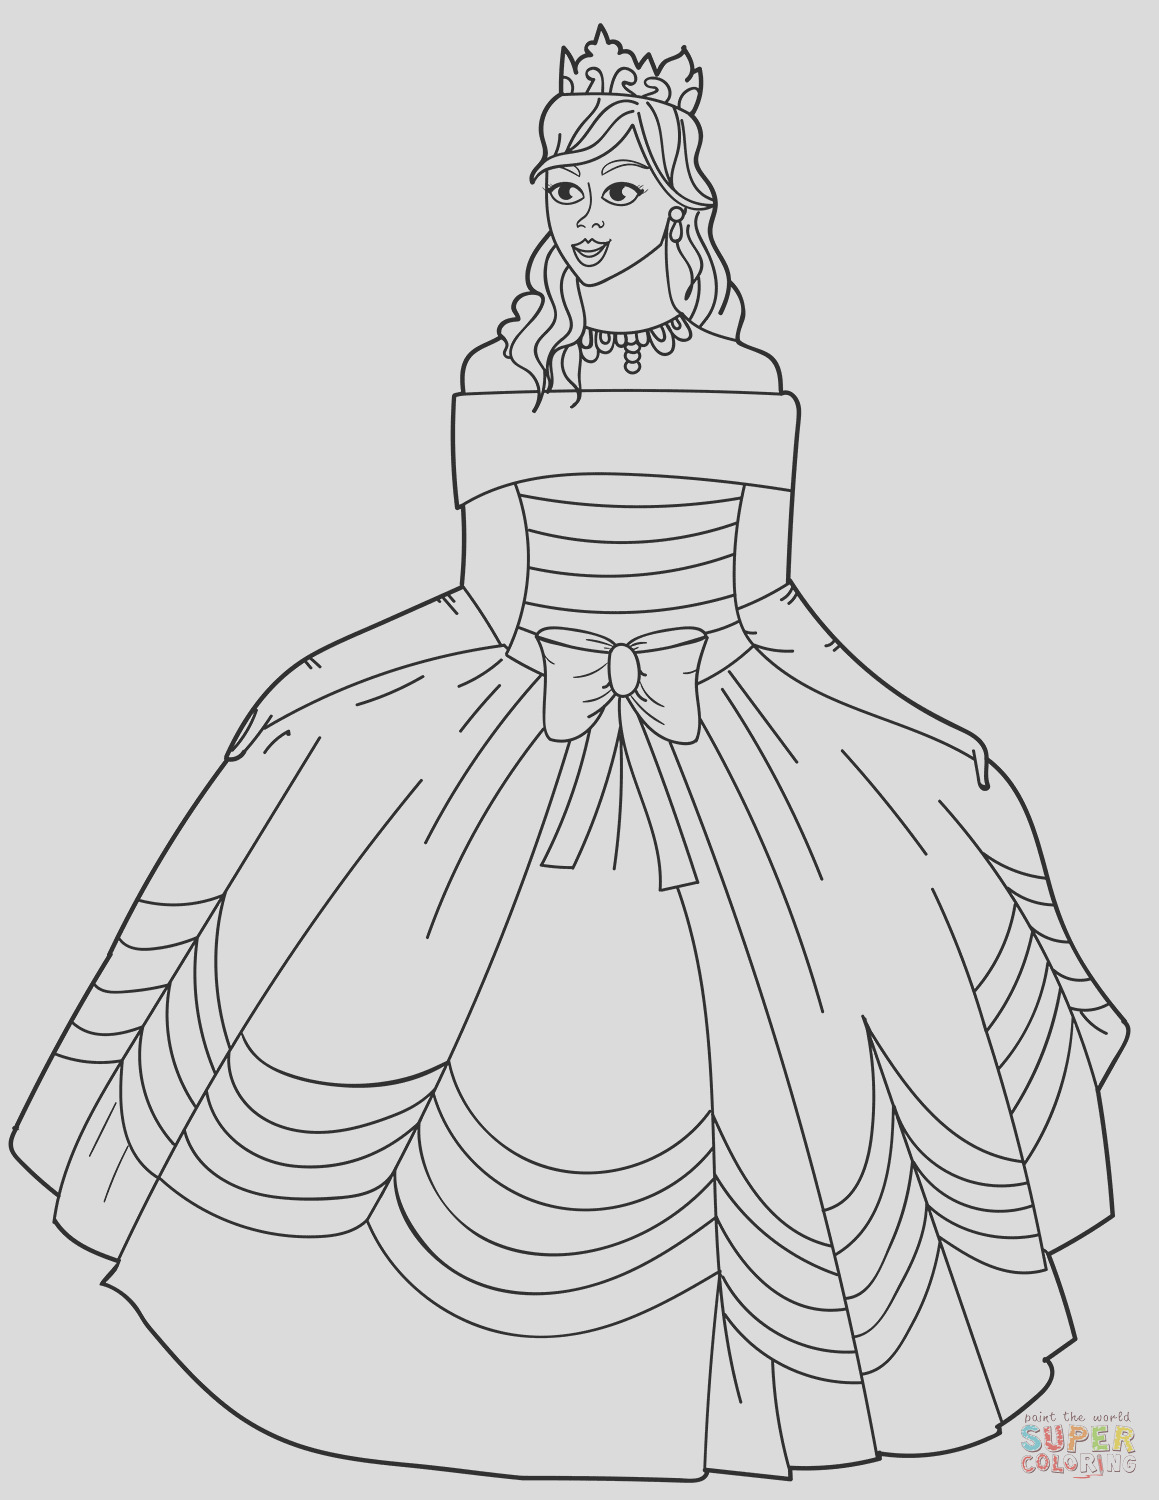 princess in ball gown of the shoulder dress